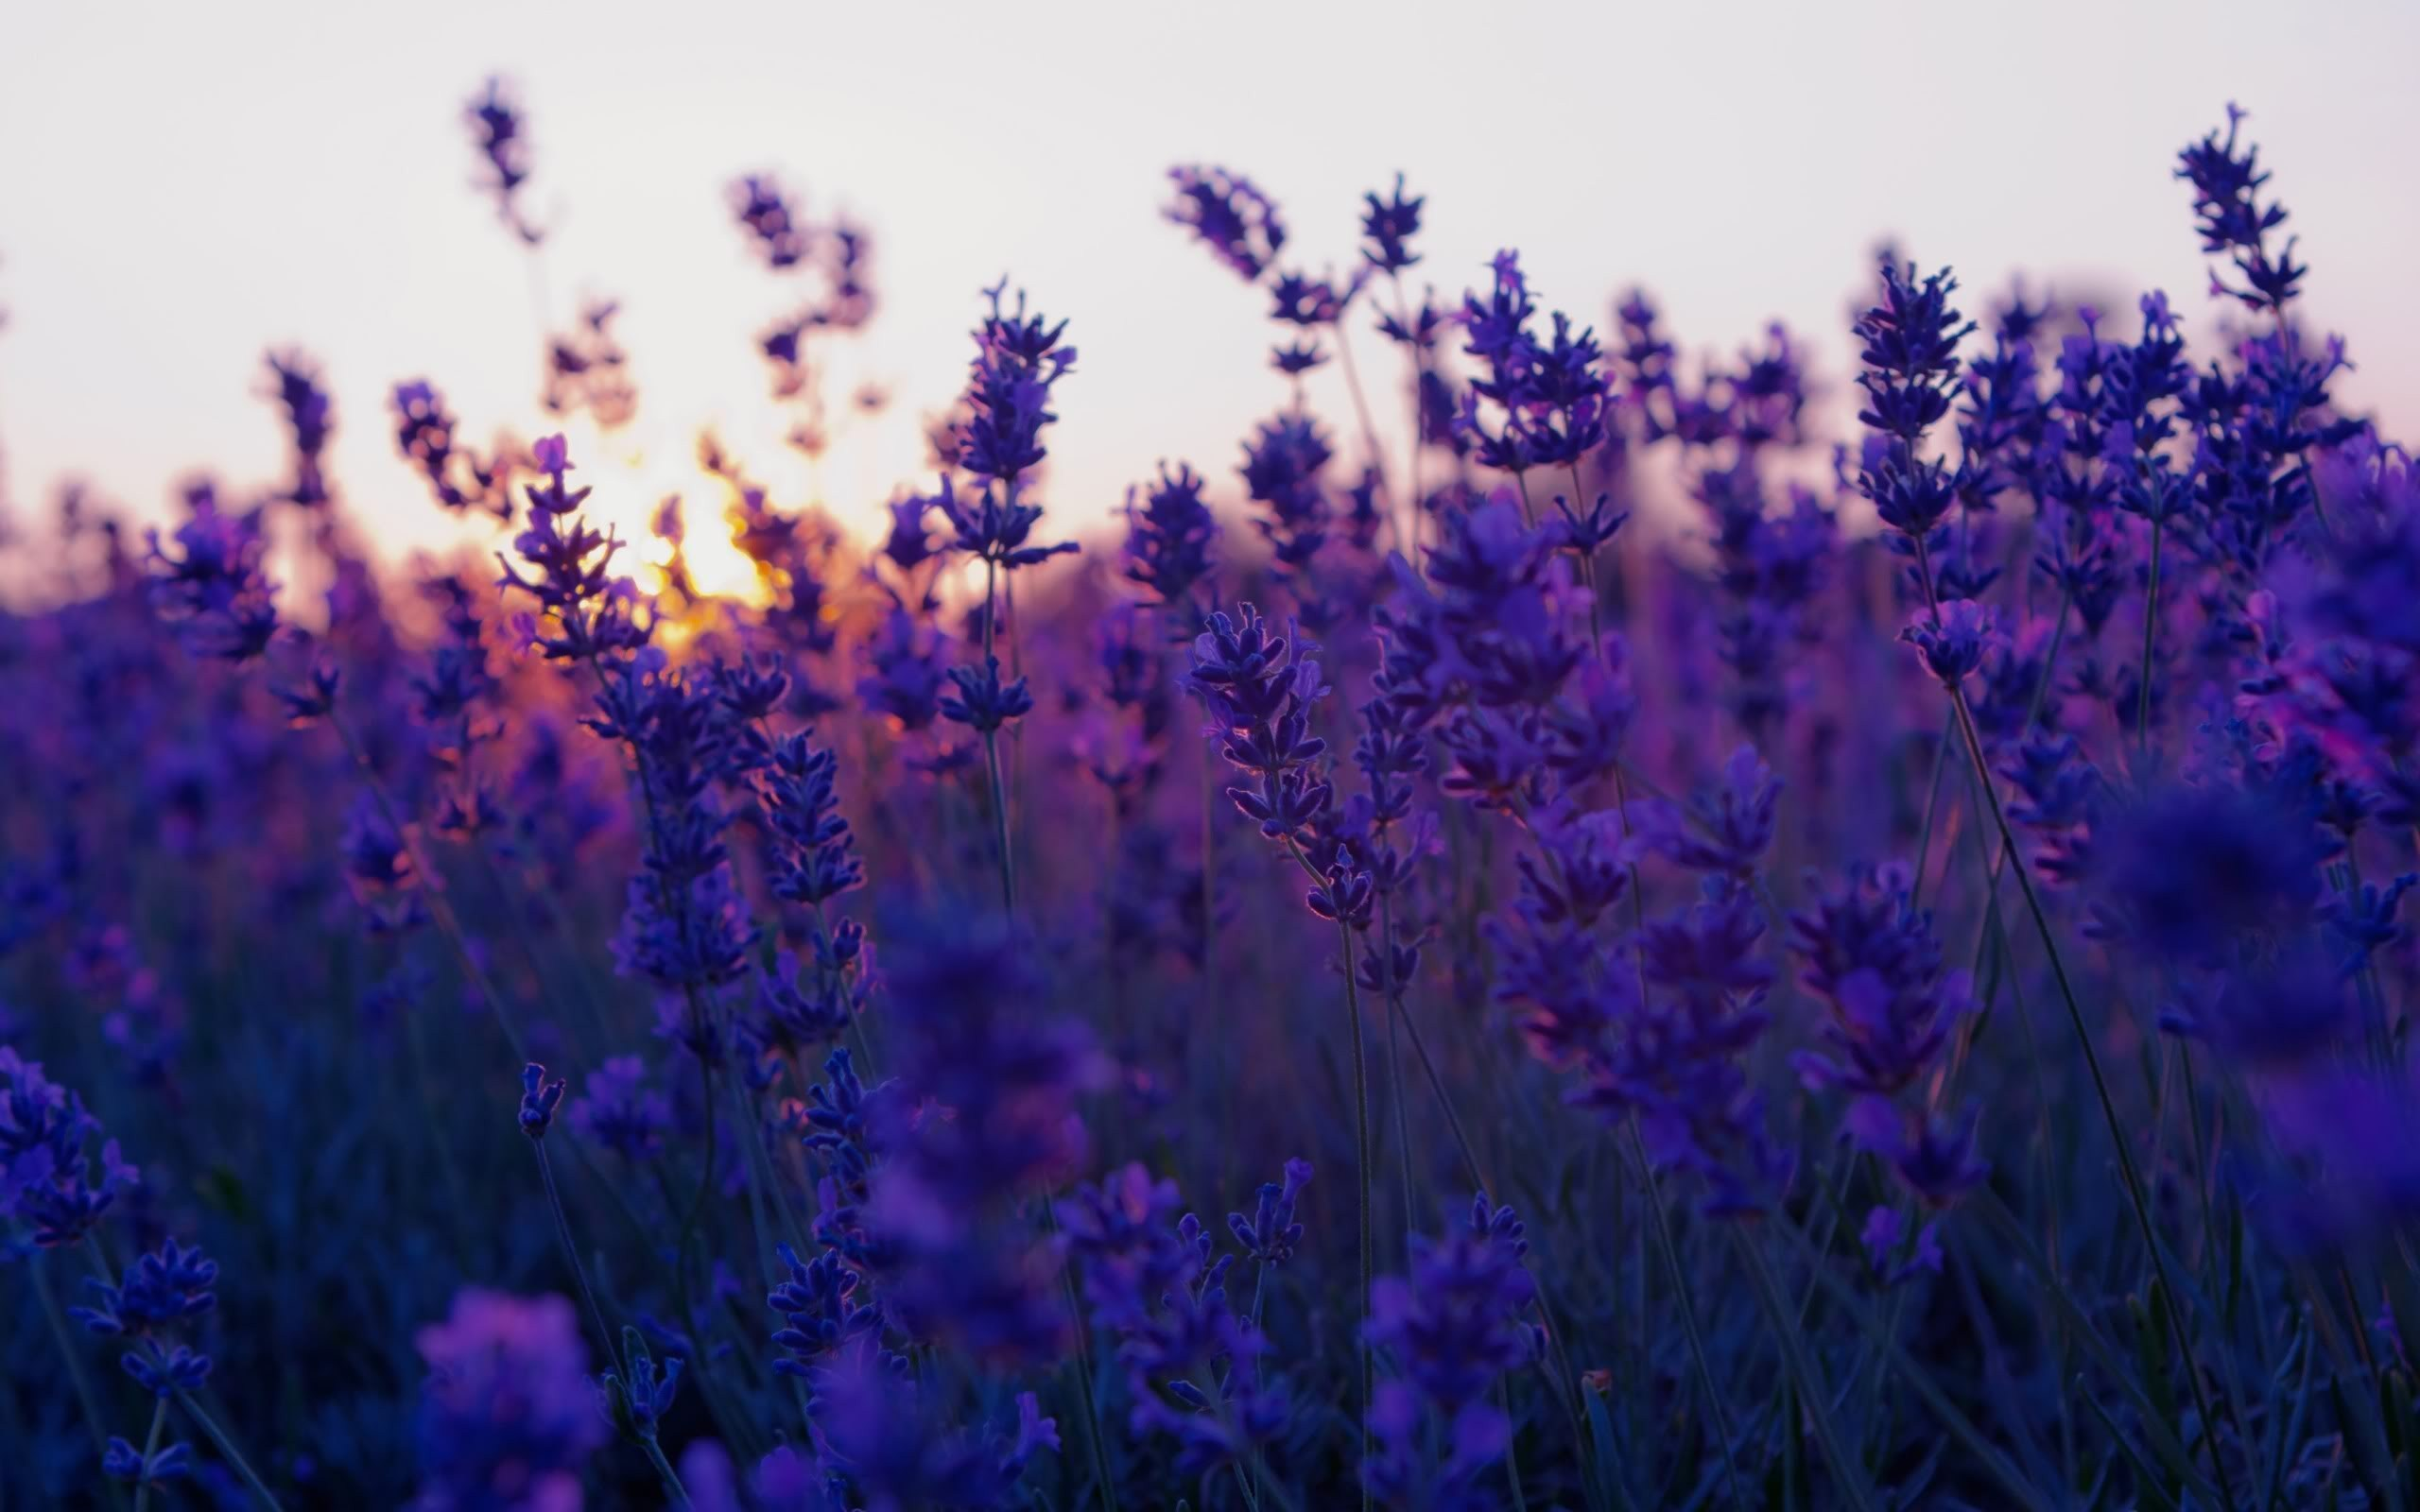 Field Lavender Purple Flowers Nature Photo